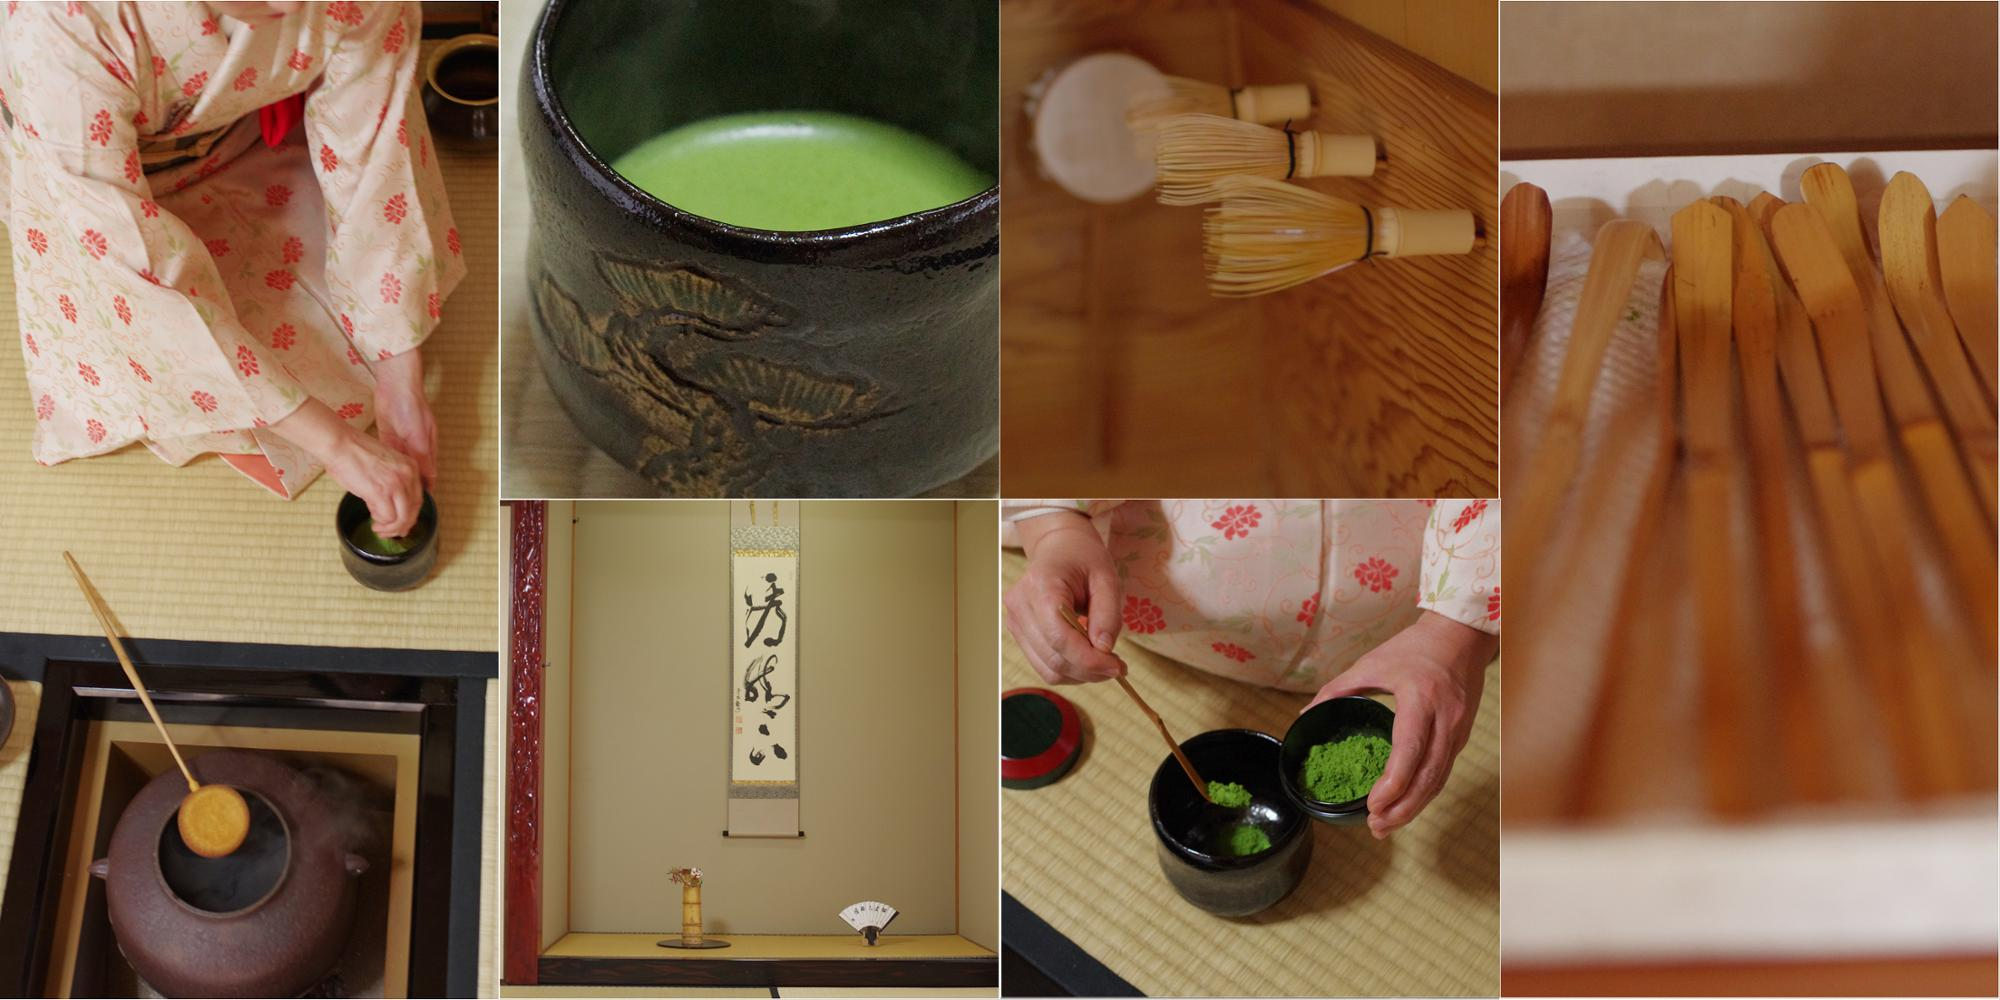 Japan Hot Sale Products Organic Matcha Produced Iced Green Tea Matcha Latte